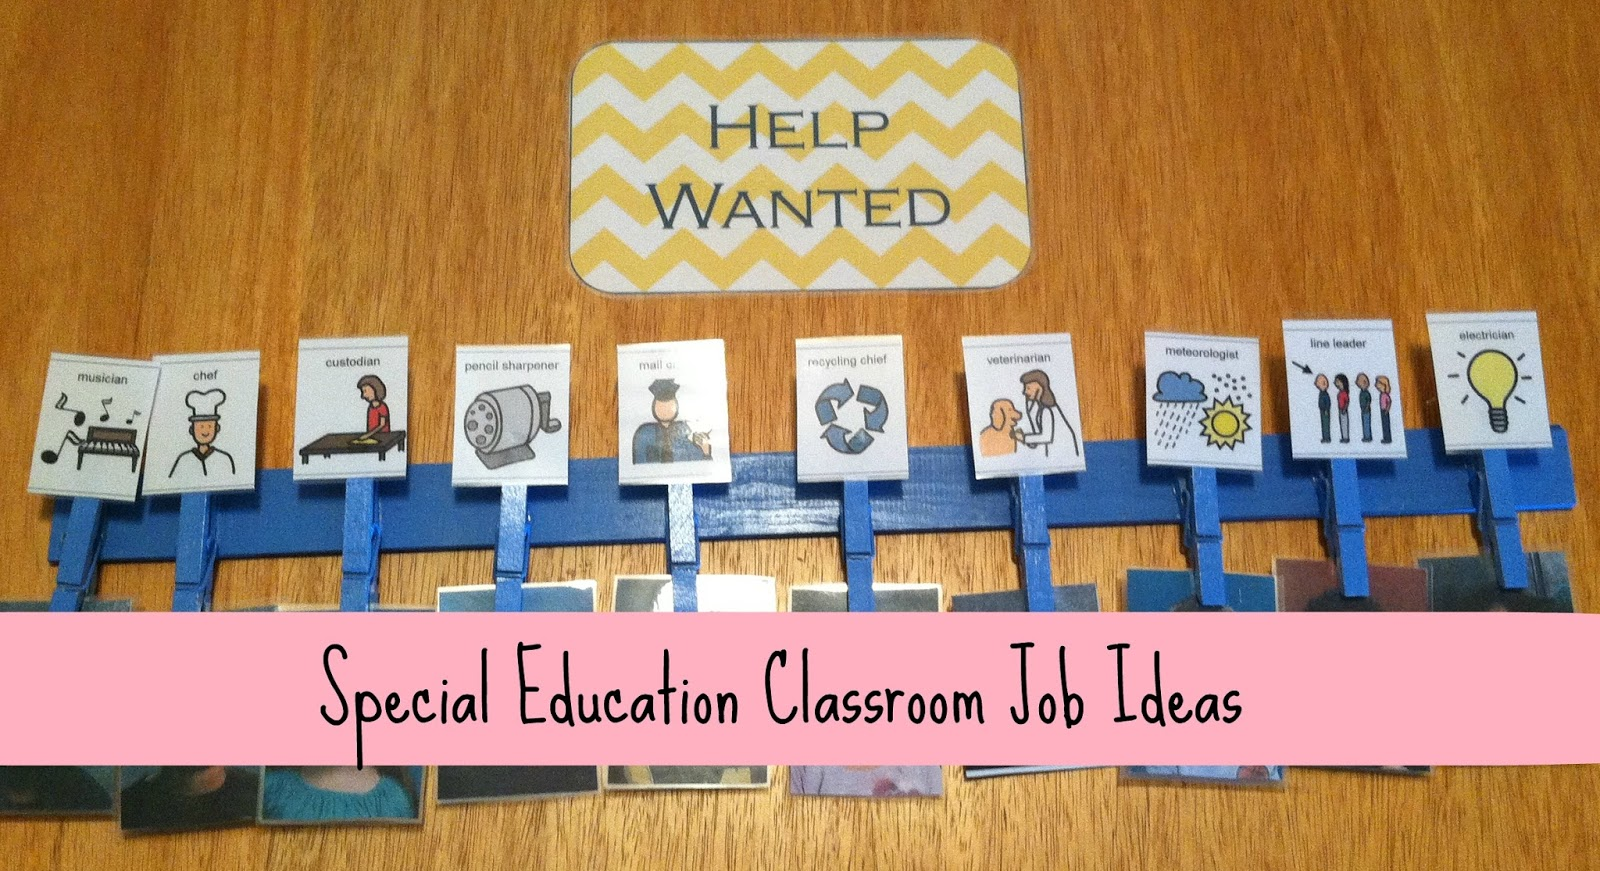 Special Education Classroom Decorations ~ Little miss kim s class special education classroom job